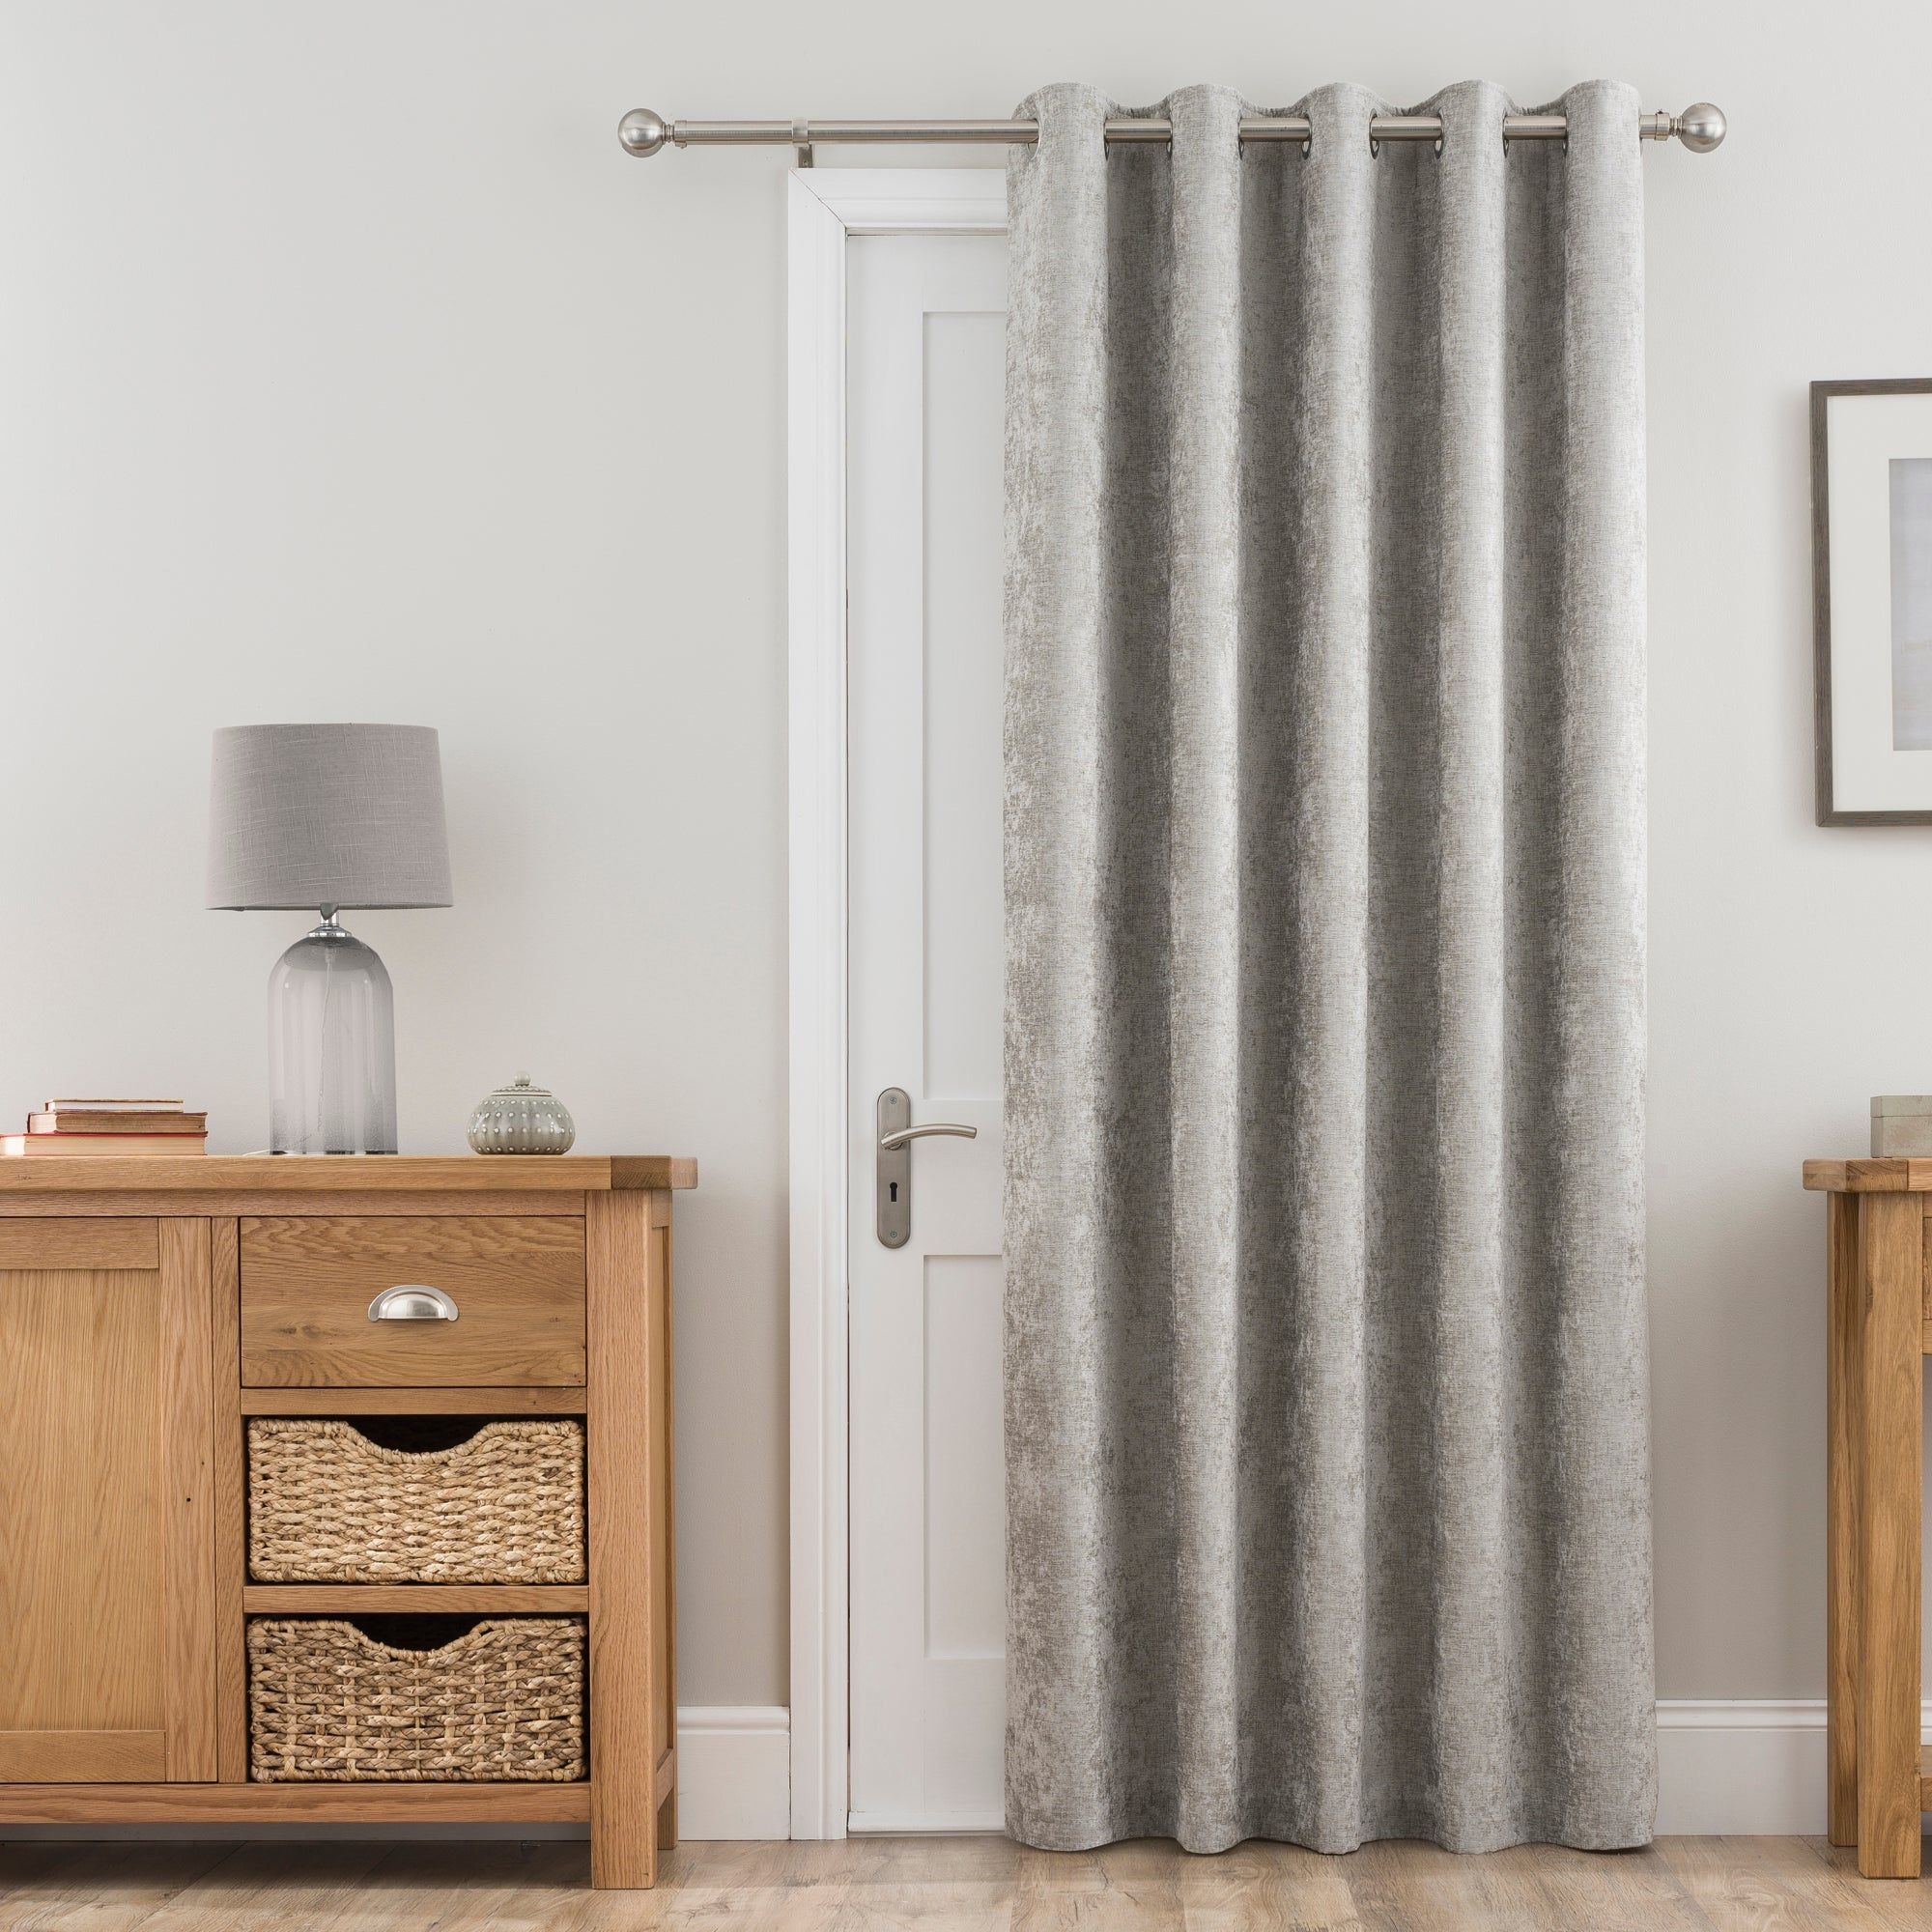 Chenille Silver Thermal Eyelet Door Curtain Door Curtains Curtains Grey Eyelet Curtains